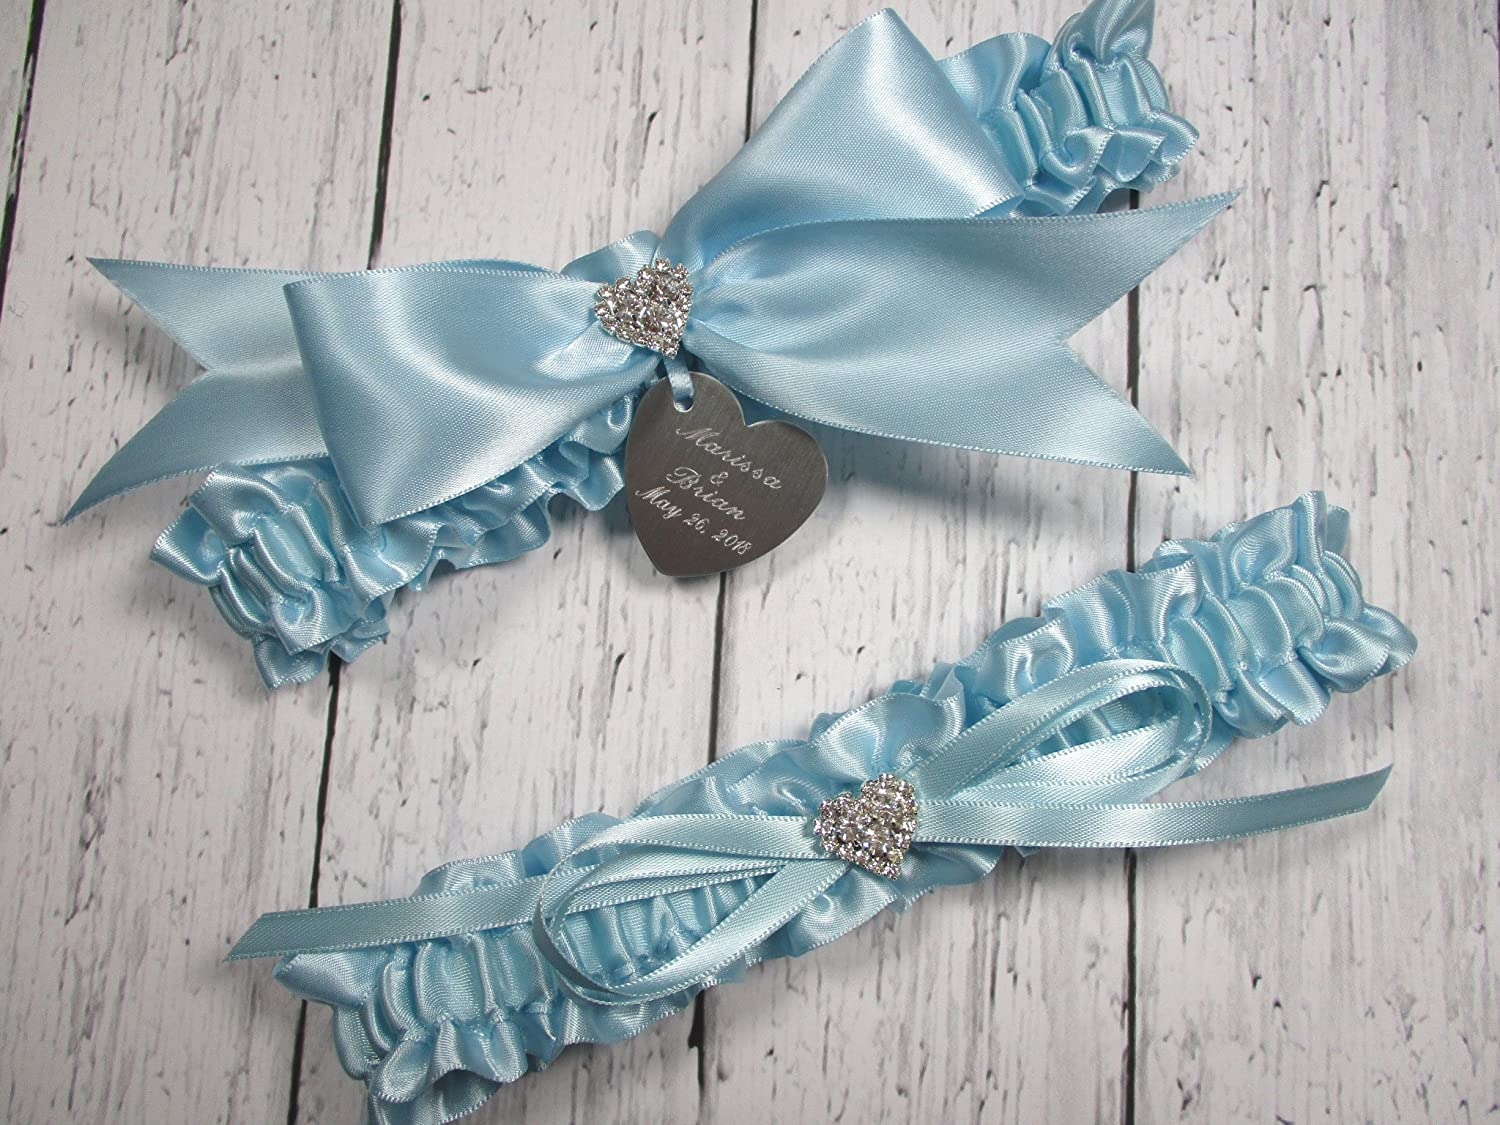 Blush Wedding Garter in Satin with a Brilliant Rhinestone Heart and Personalized Engraving